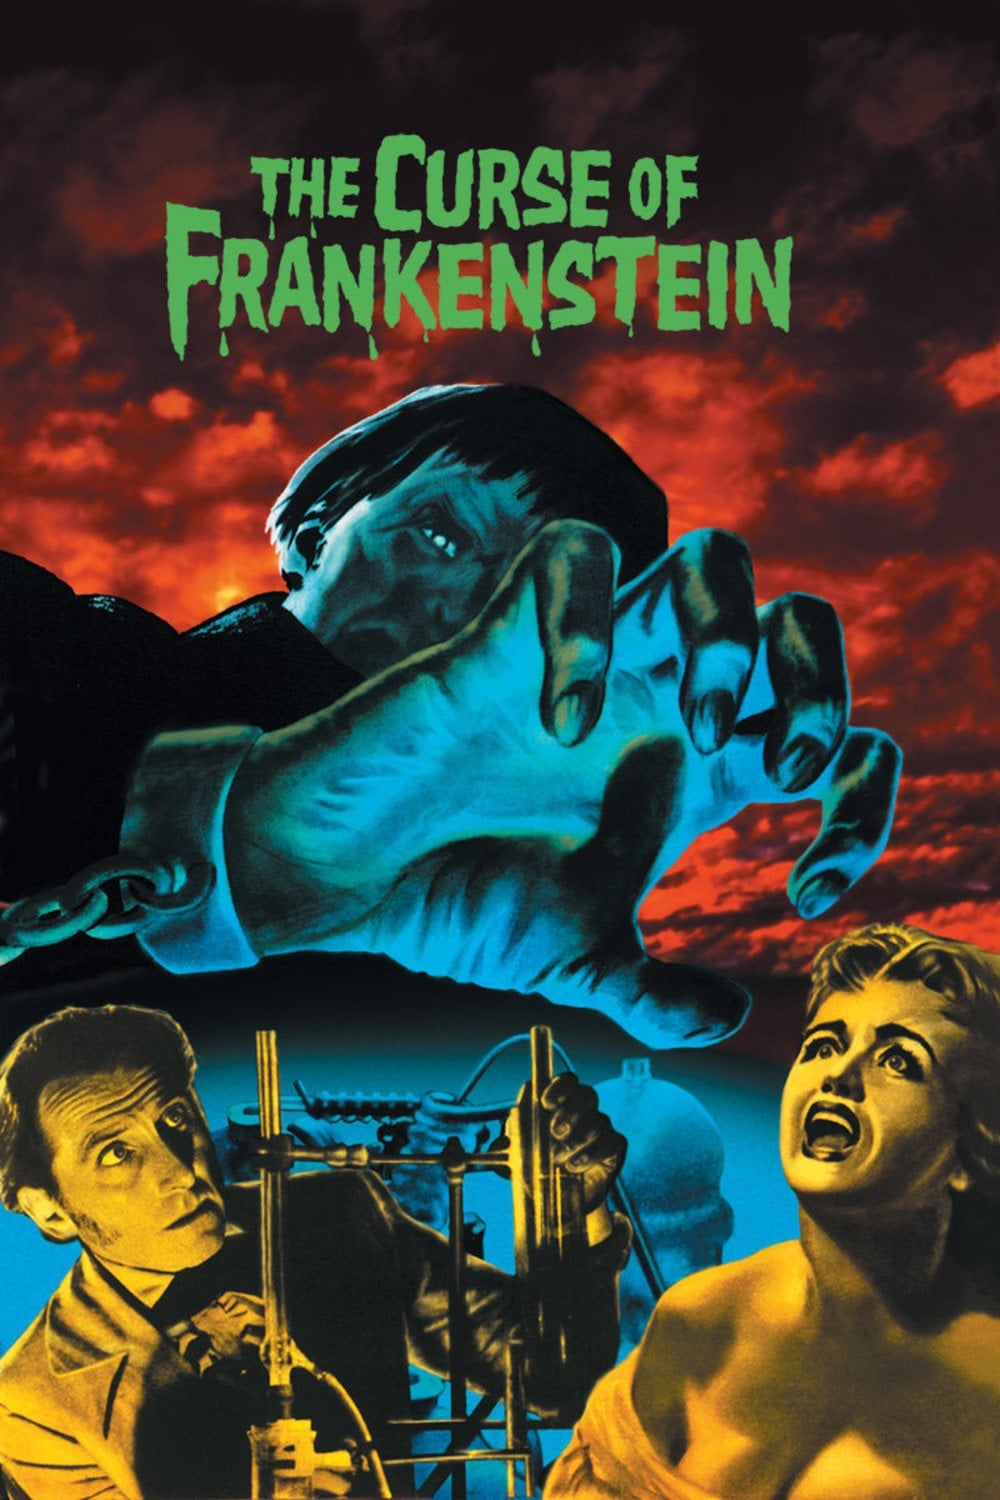 Poster for The Curse of Frankenstein (1958)